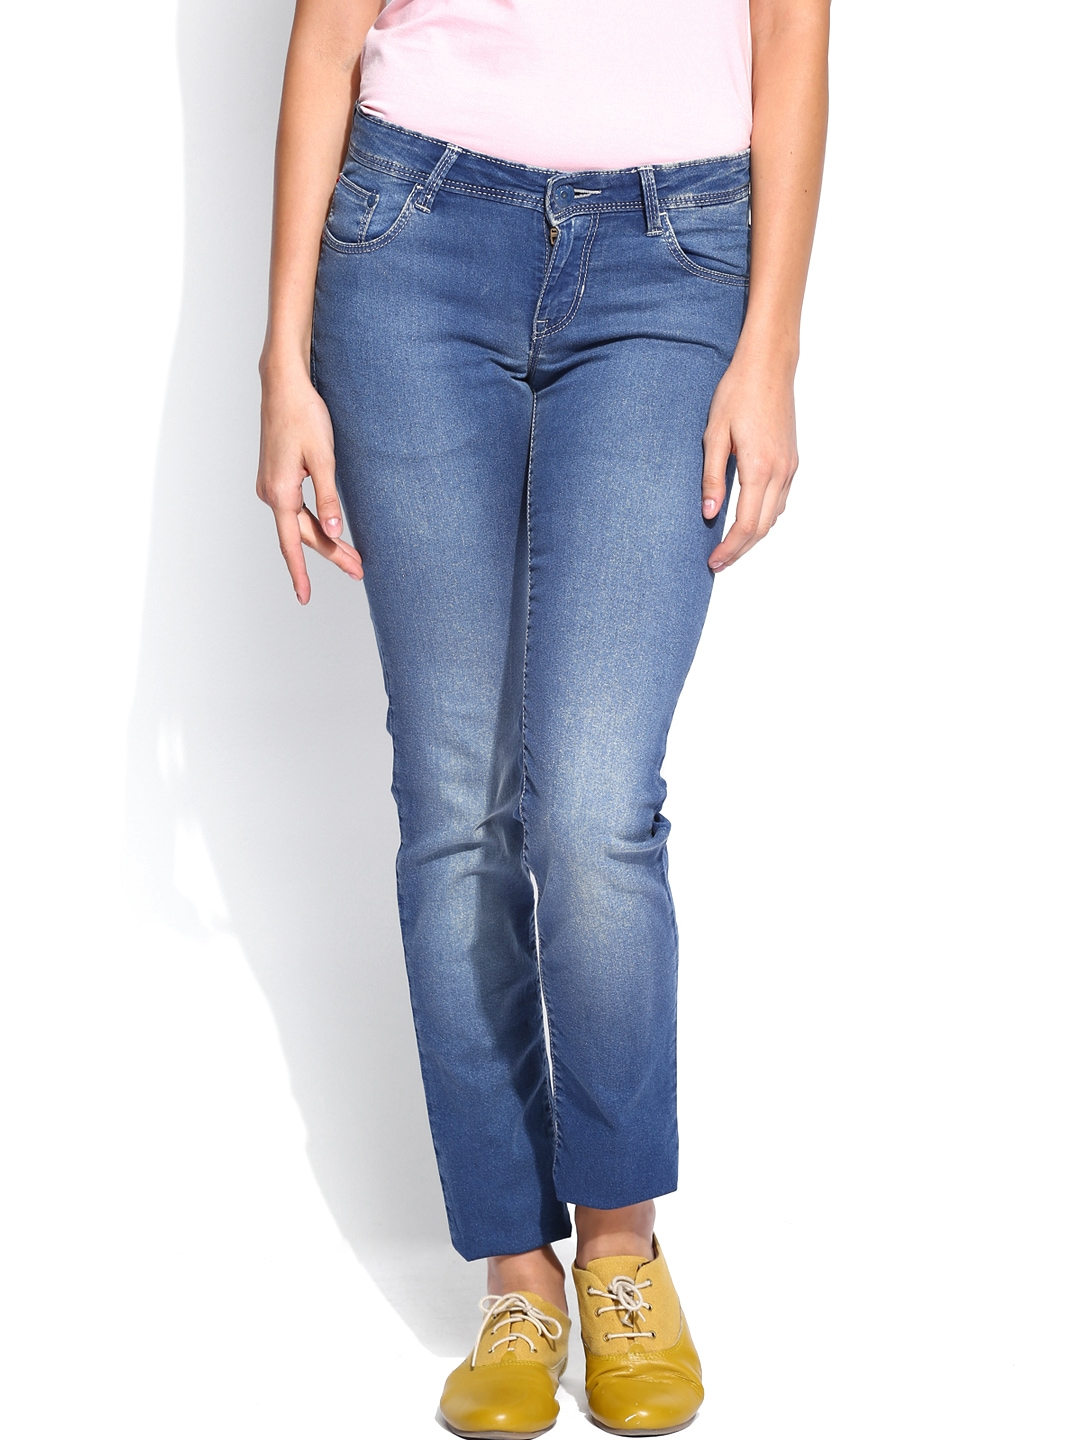 Polo Jeans - Ralph Lauren Men's Jeans Polo Ralph Lauren Men's Jeans are a quality fashion staple in every closet and are a great option for every preppy lifestyle. Shop by size, color and style to find just the pair of jeans you're looking for.